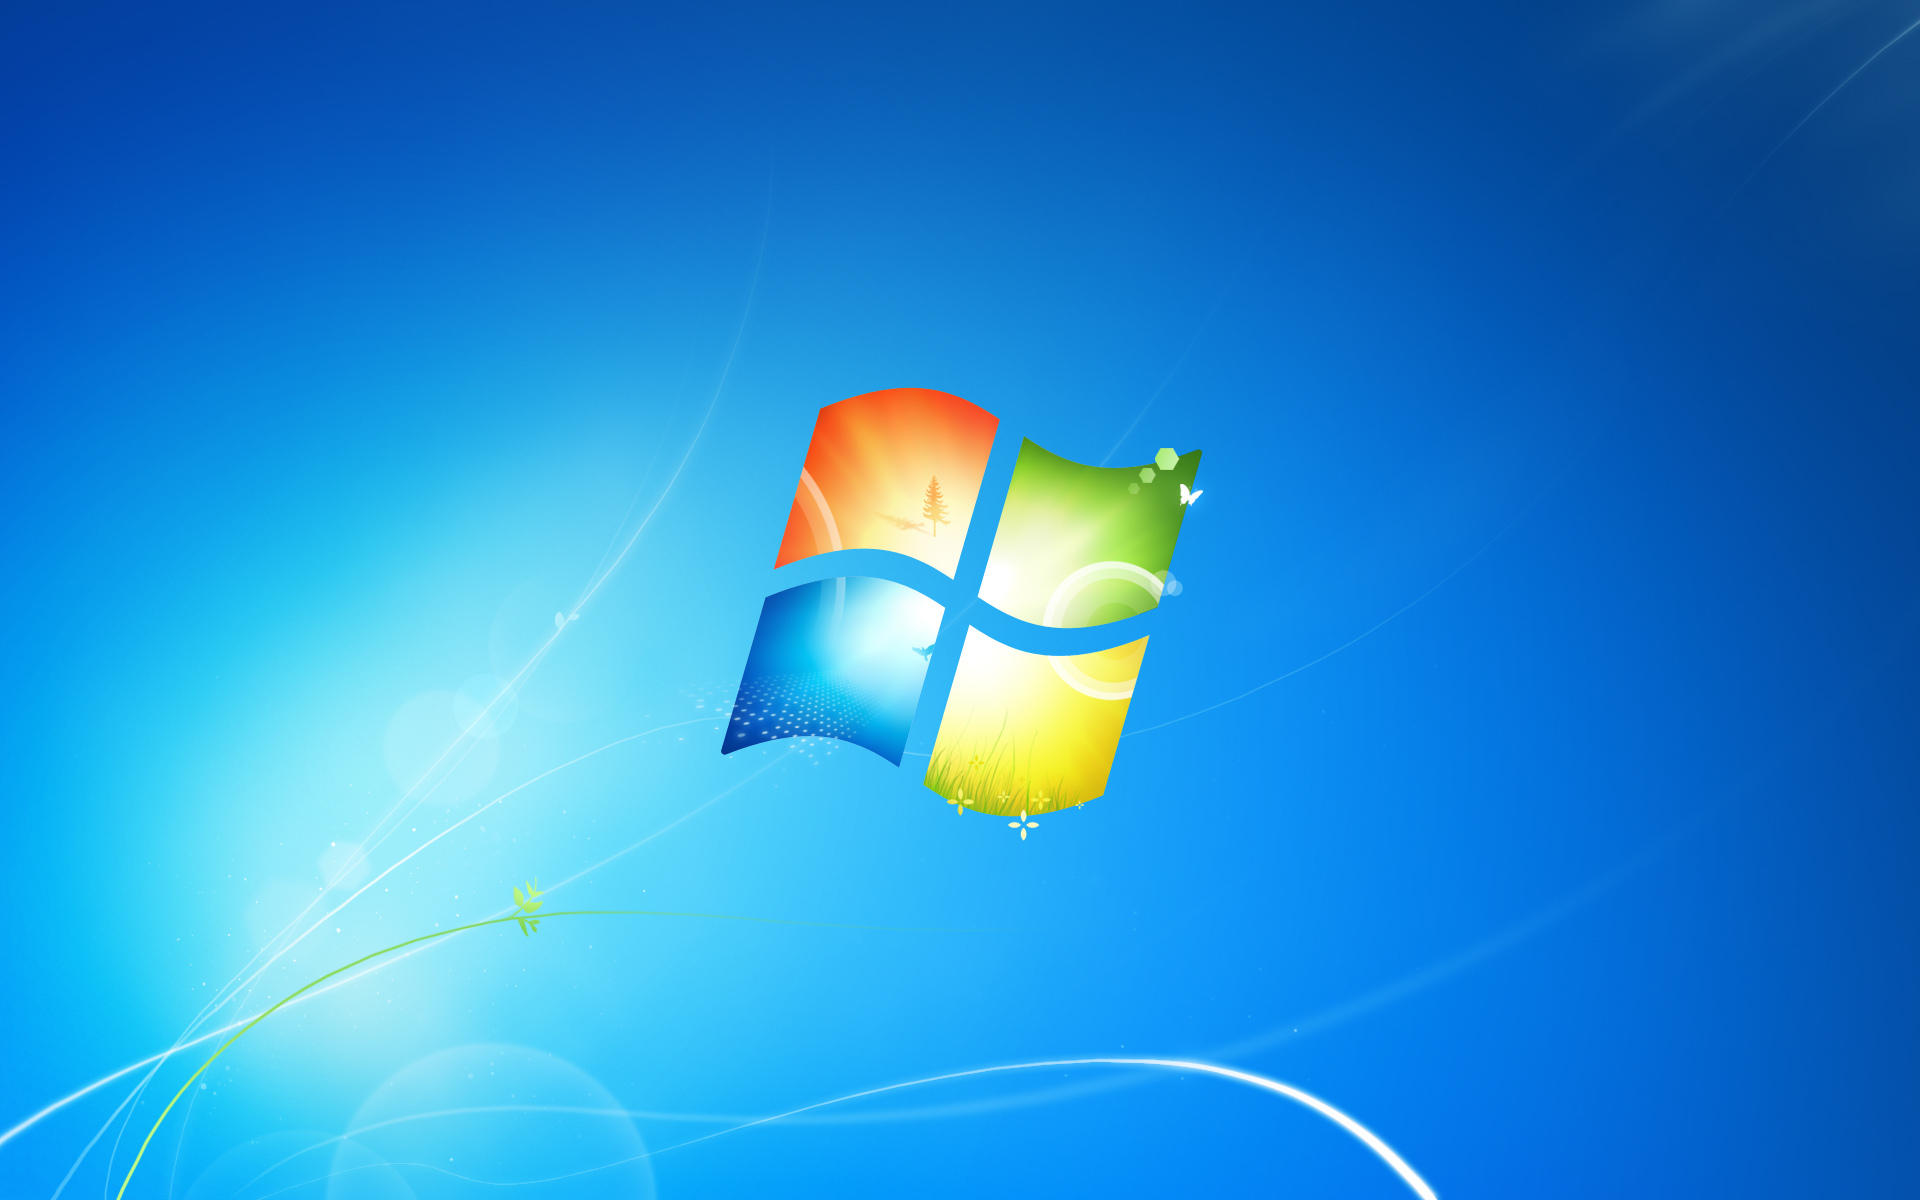 Die Standard-Wallpaper Von Windows